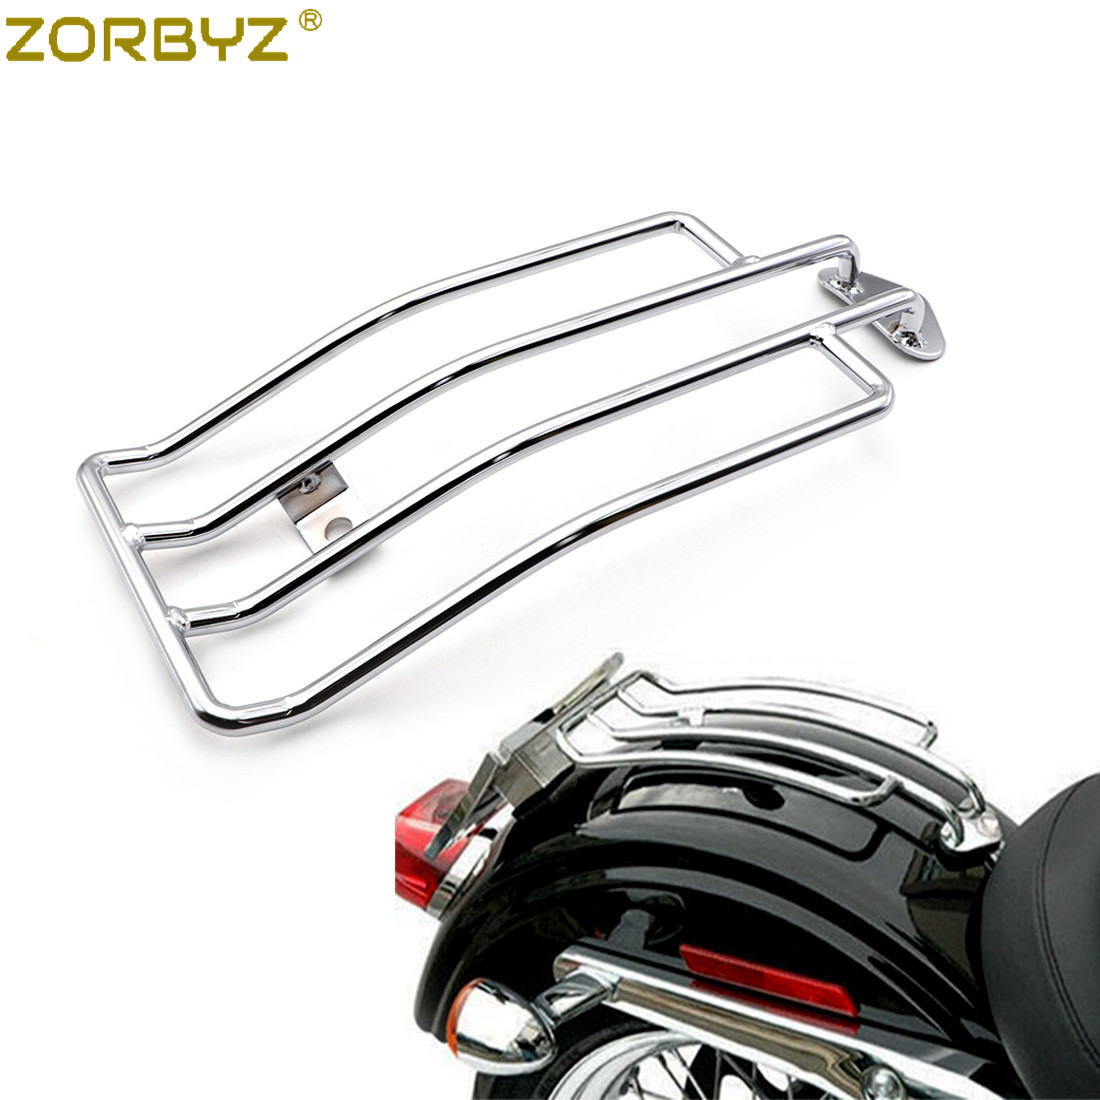 Chrome Solo Seat Luggage Rack 4 Harley Davidson Sportster XL883 XL1200 1985-2003